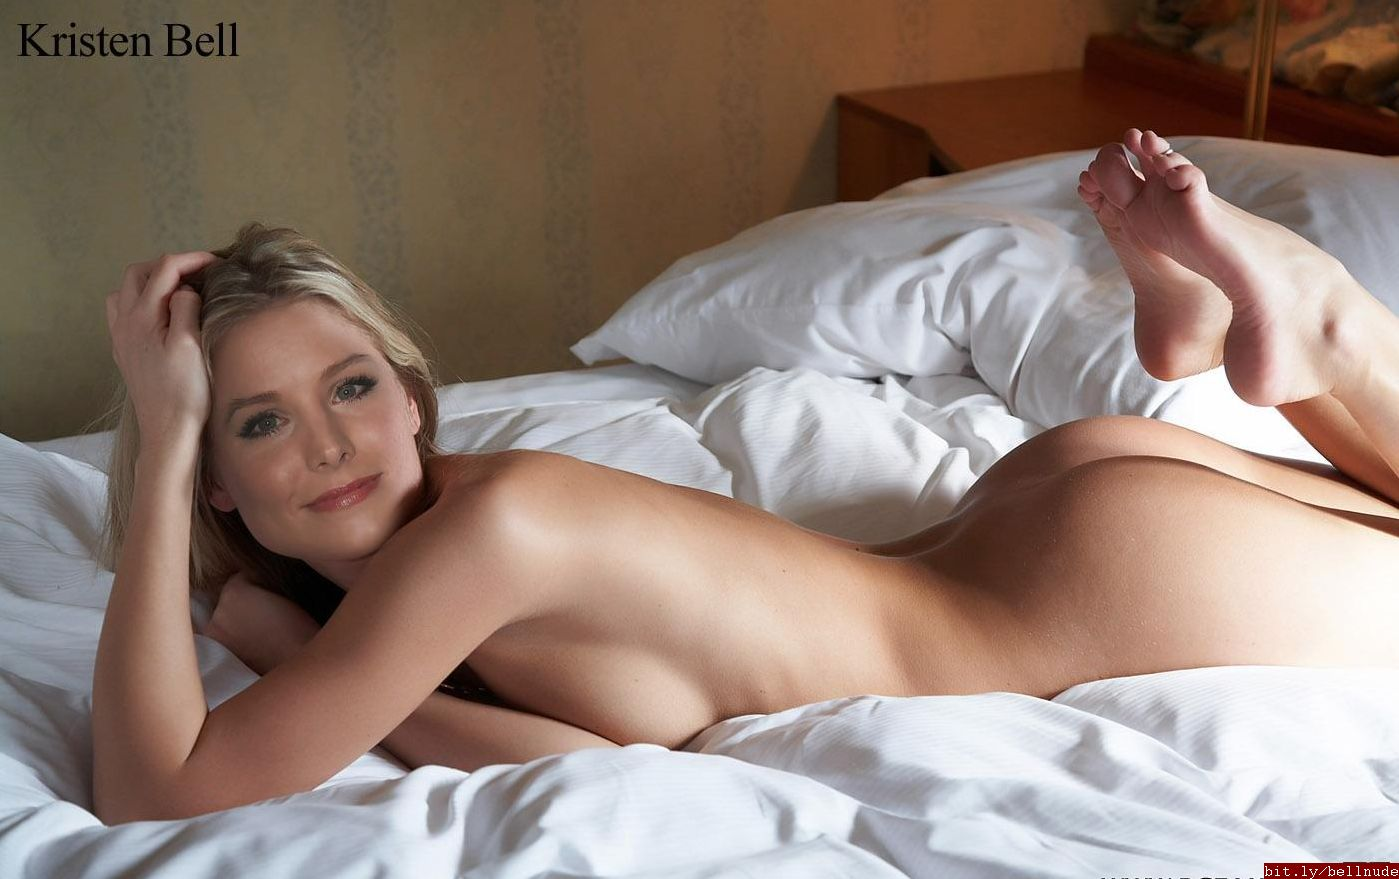 Kristen bell nude pictures at JustPicsPlease